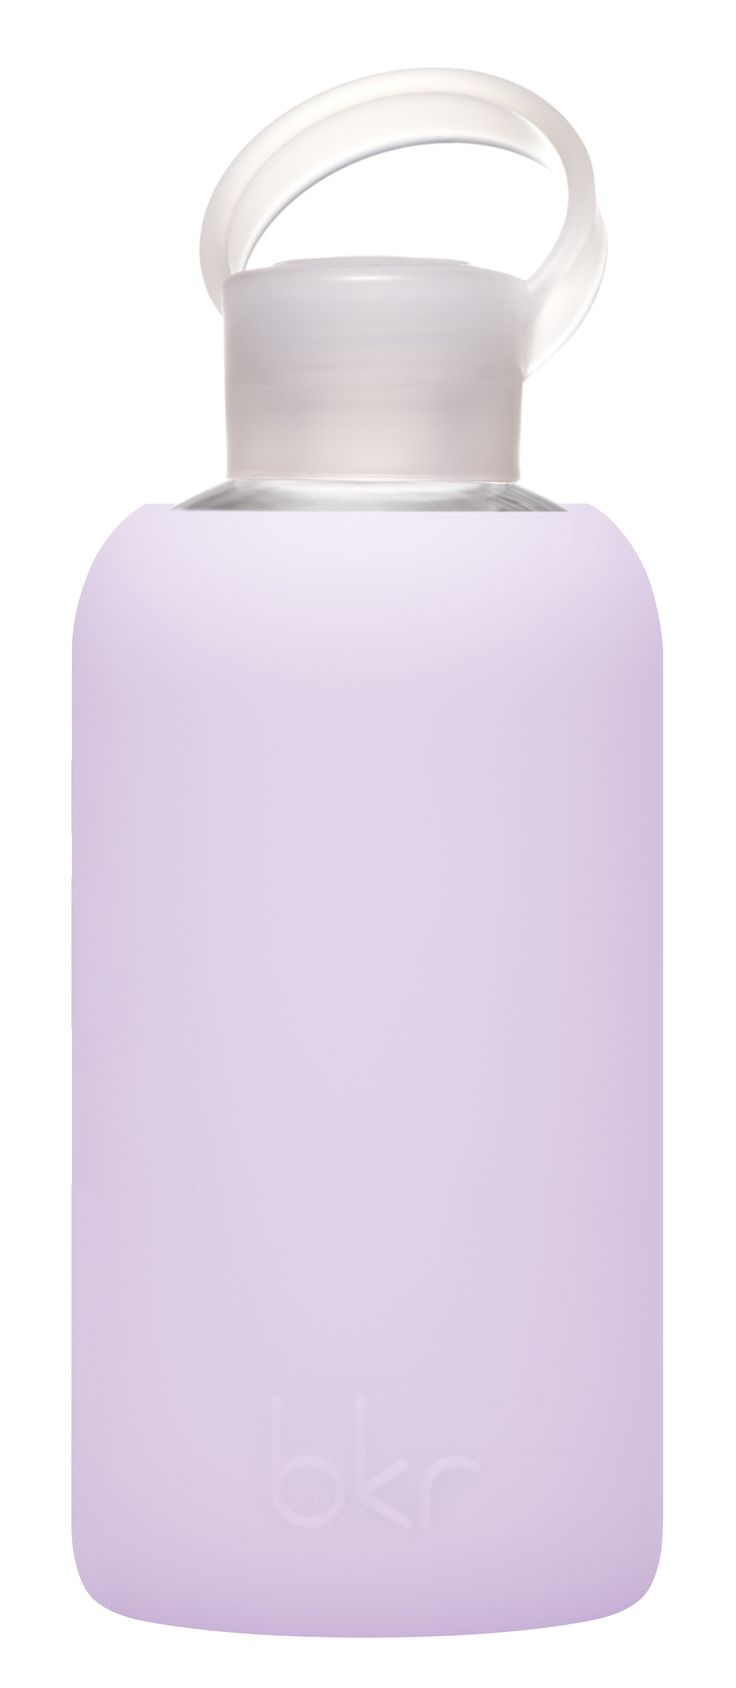 "White Apothecary | bkr 500 mL / 16 oz glass water bottle in ""Fluff"" 